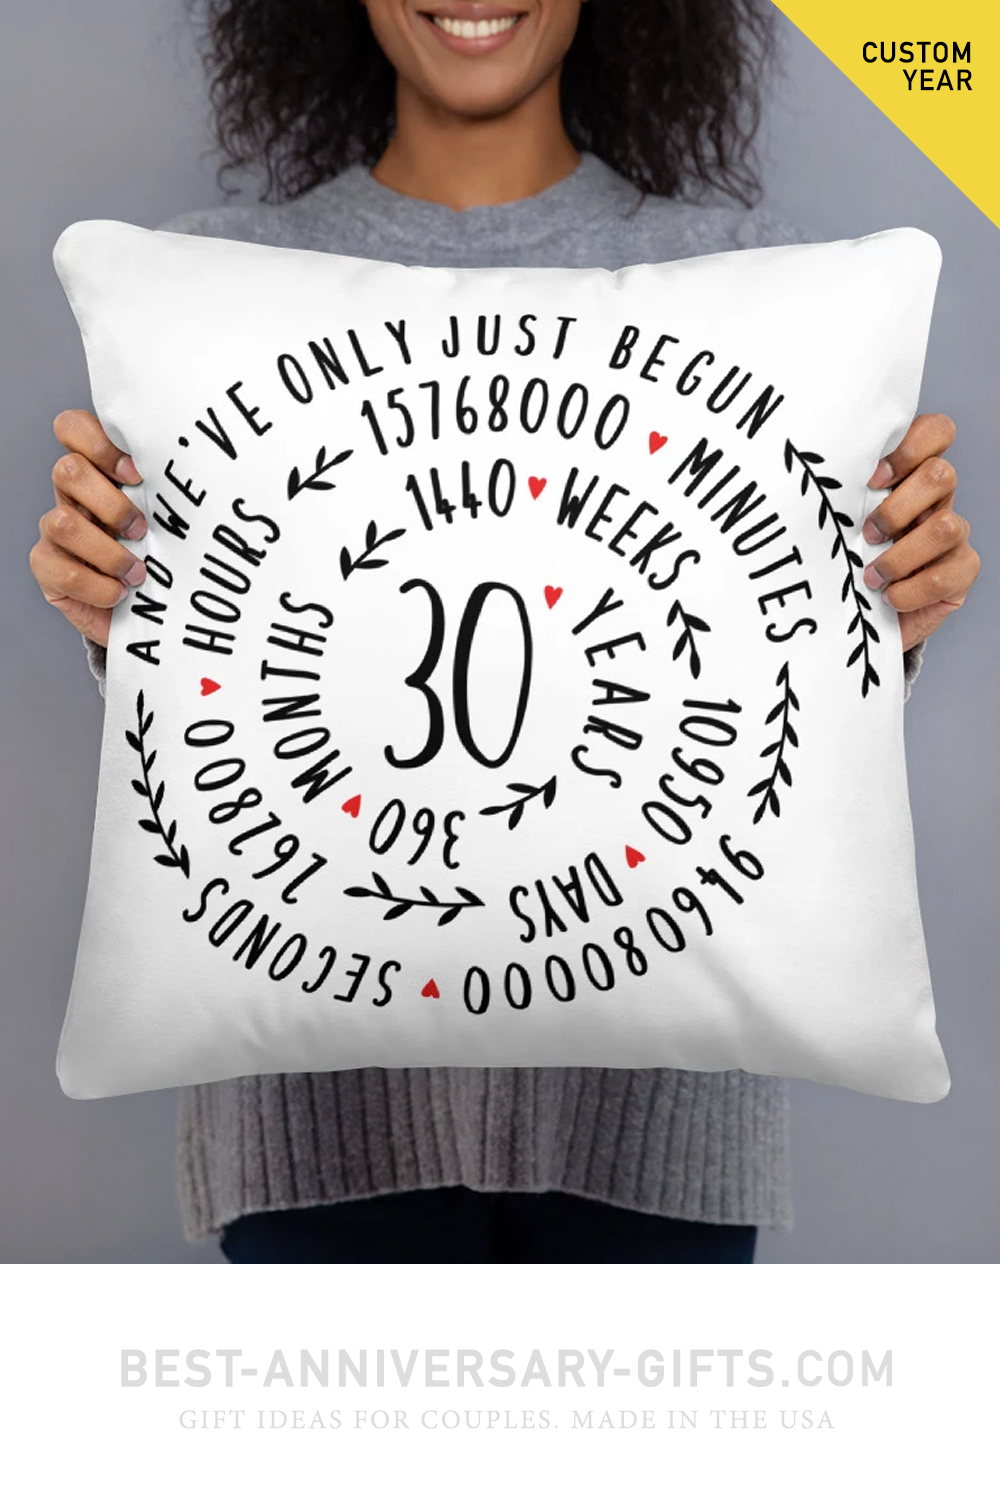 Anniversary gift ideas - 30th wedding Anniversary Pillow - Custom Year